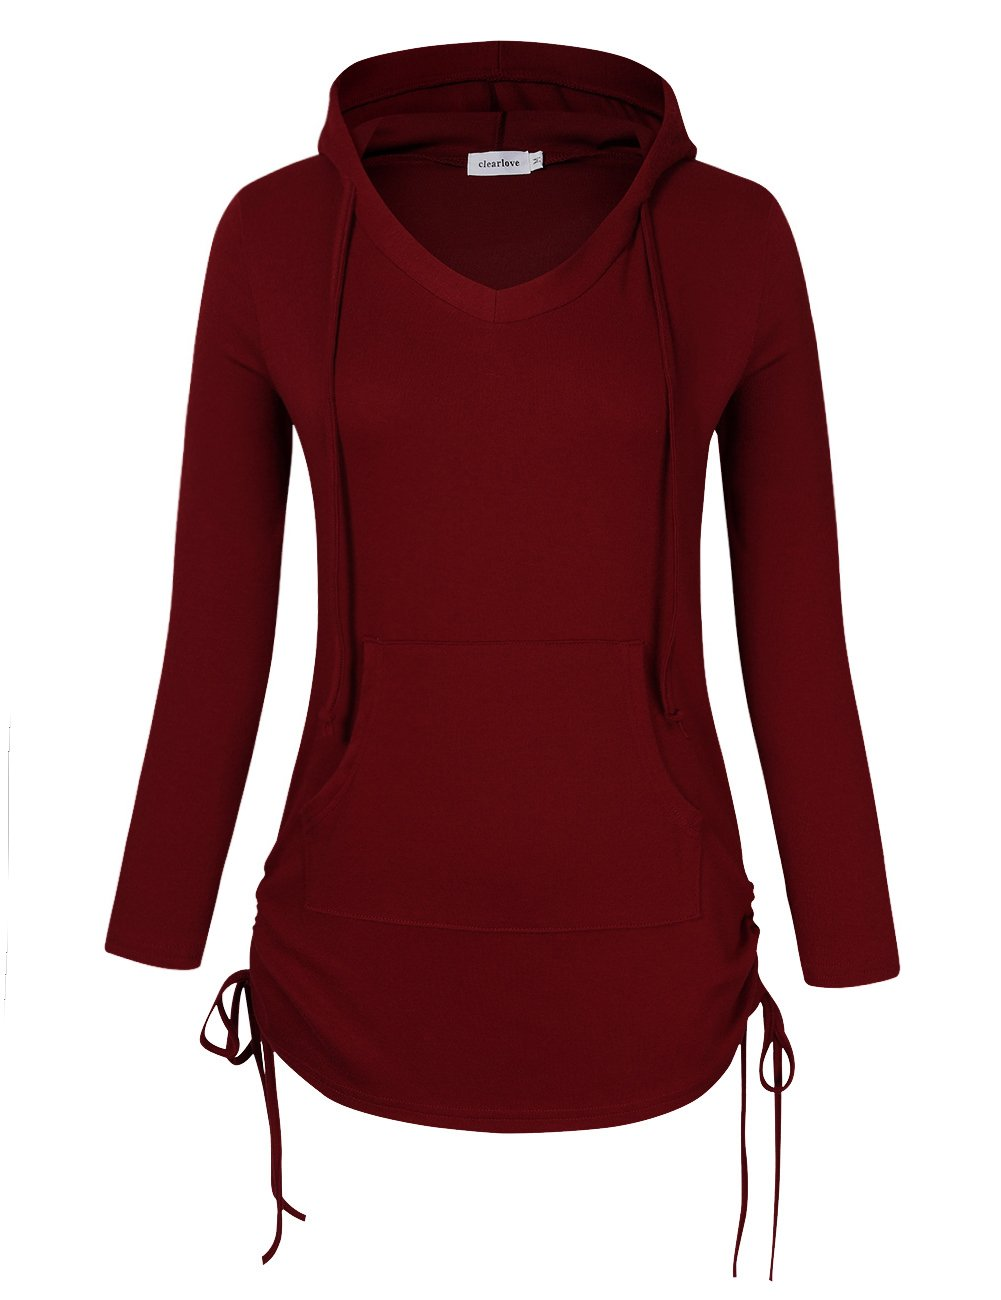 Clearlove Women's V Neck Long Sleeve Sweatshirts Pullover Hoodie Gym Shirt with Kangaroo Pocket - Wine Red X-Large